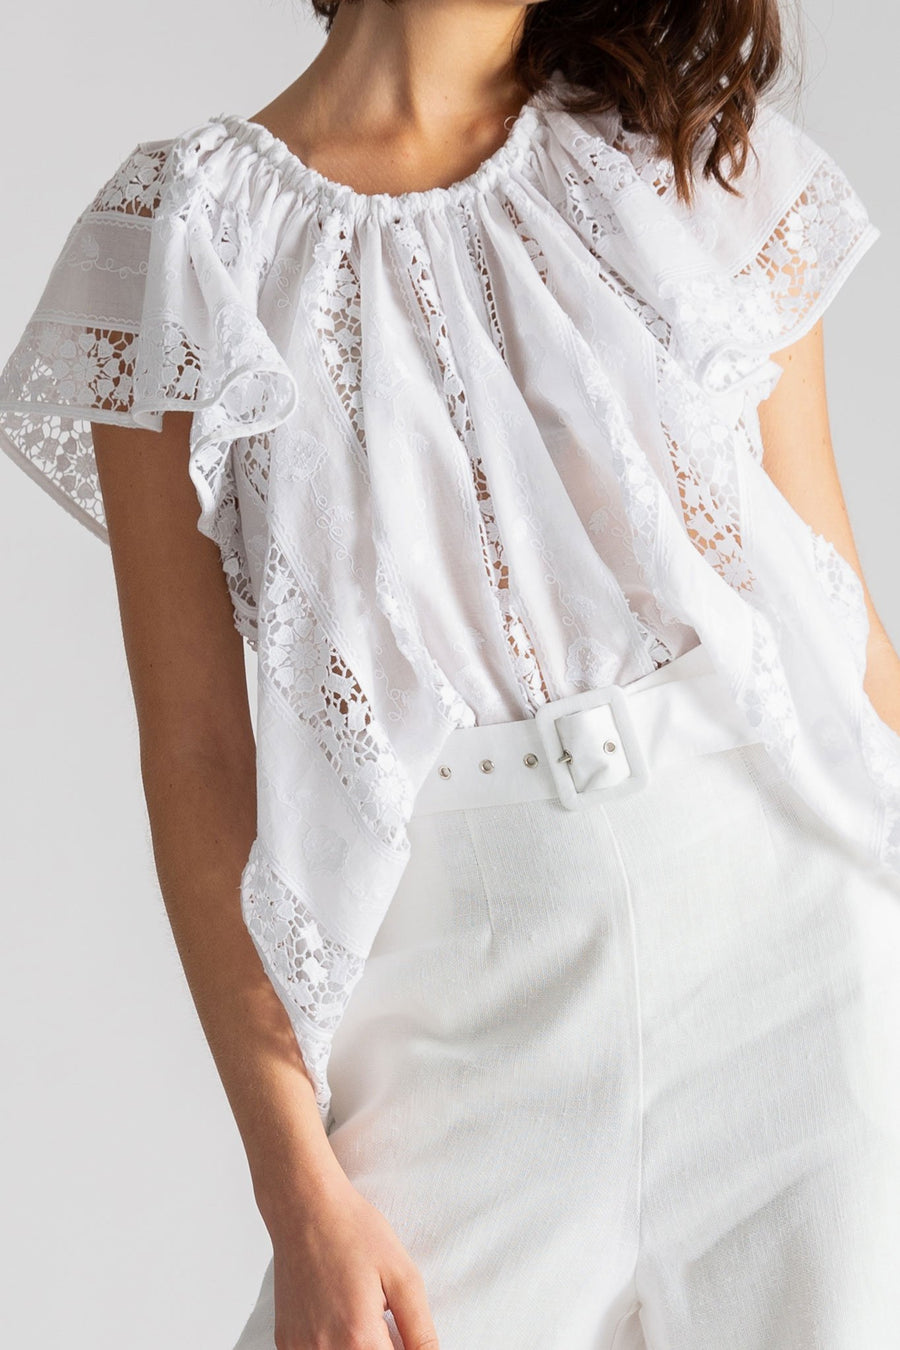 This is a detail photo of the woman's cotton and lace embroidery top with a scoop neck and flowy short sleeve. The top is tucked into white linen pants with a belt.